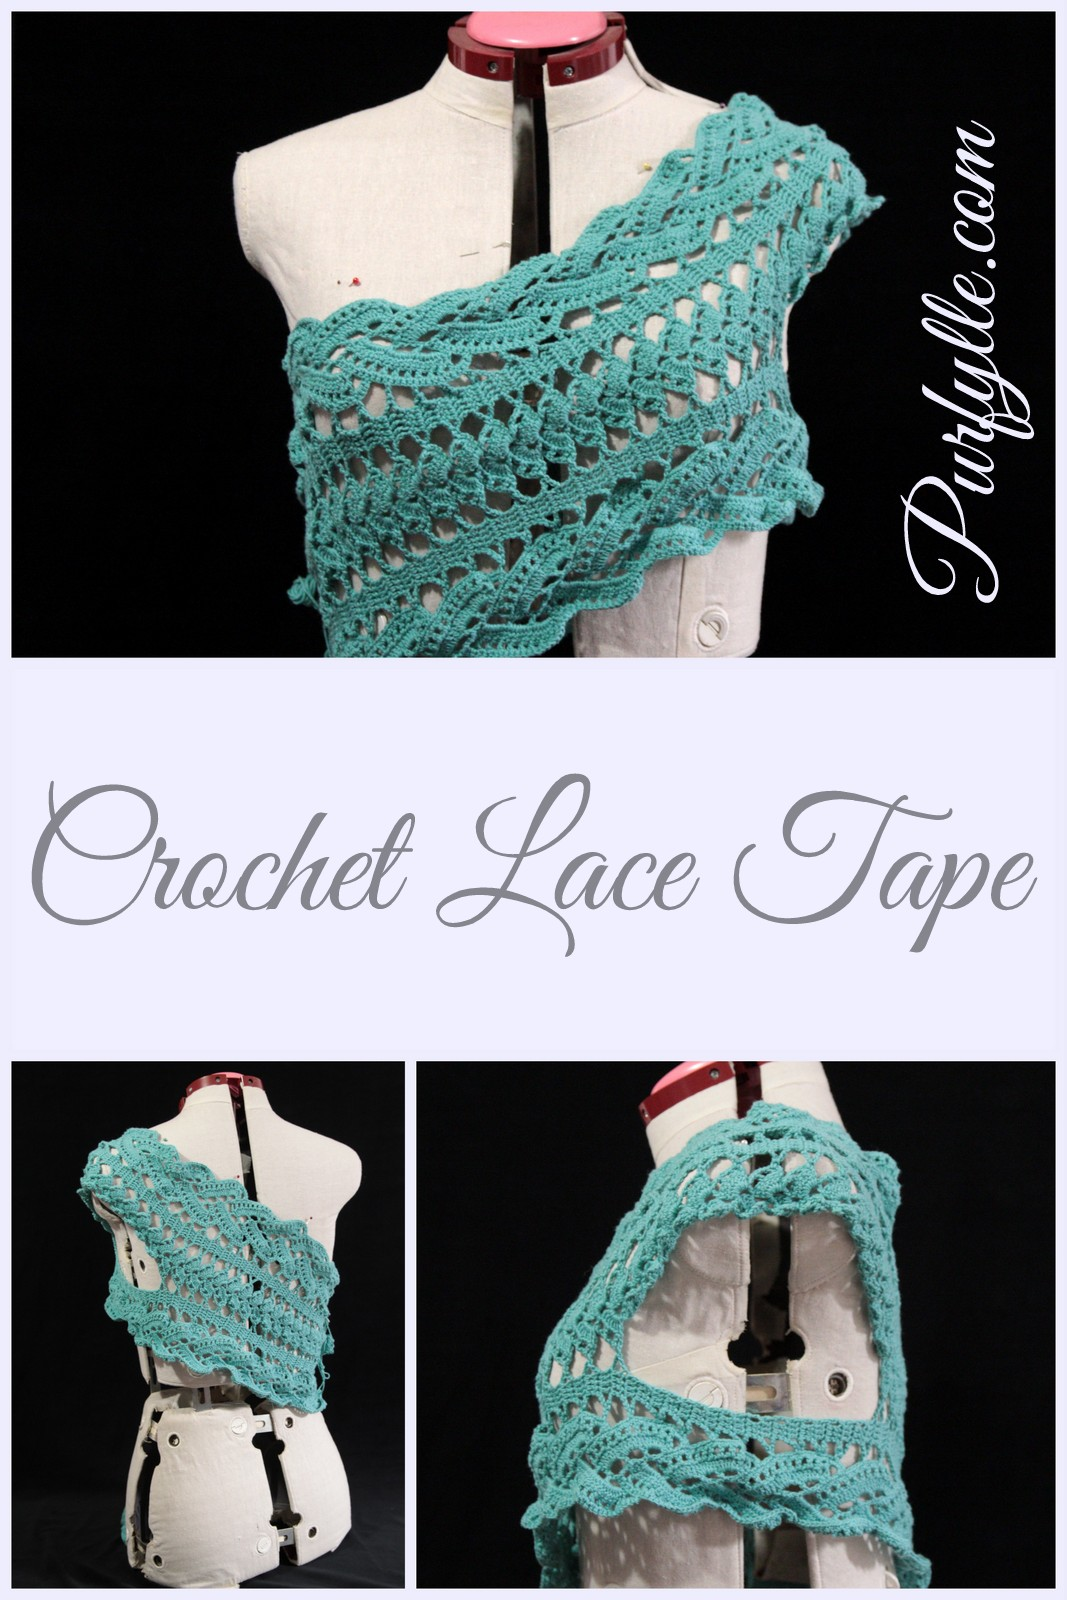 Crochet Lace Tape Asymmetrical Top - in progress